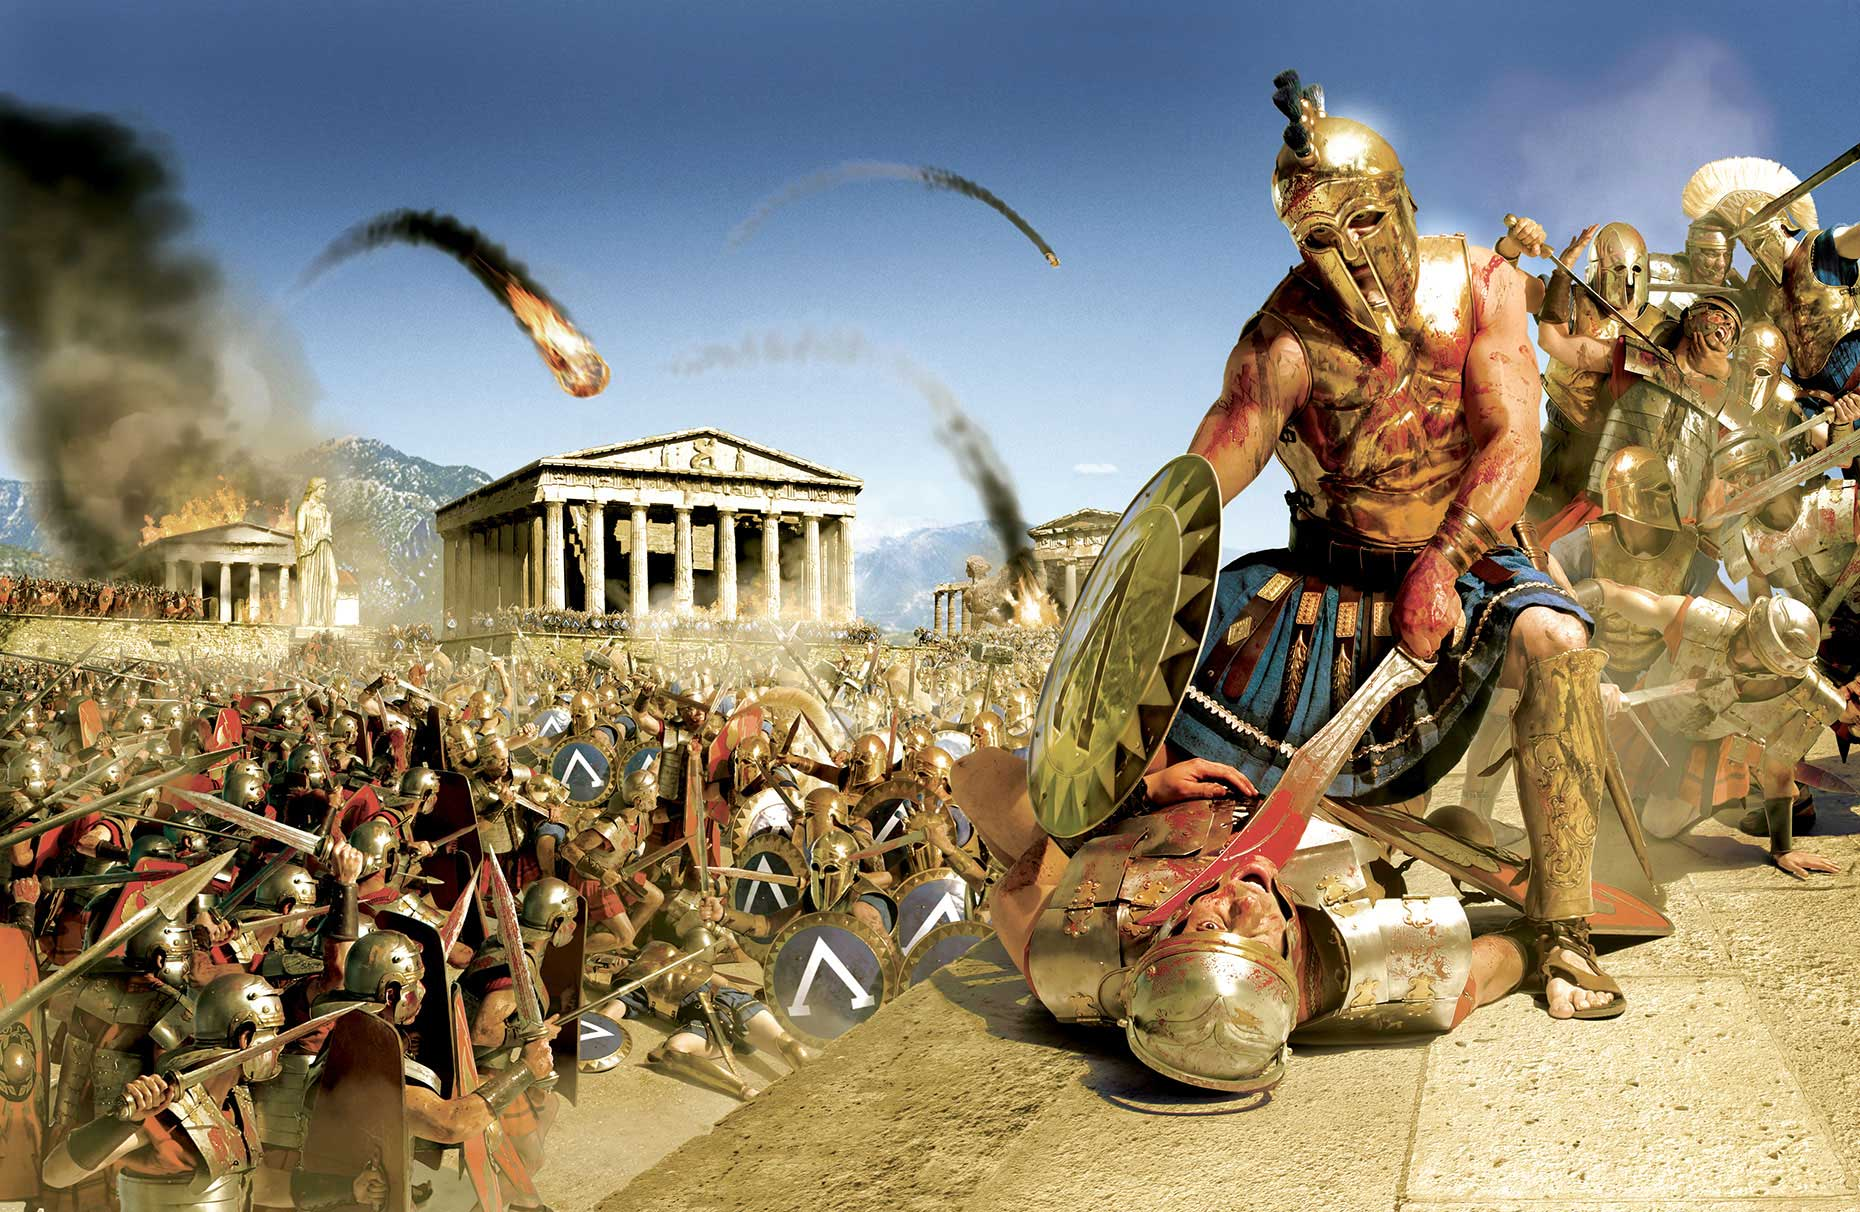 Photo-Imaging_Entertainment_Ancient greek battle-Frank Neidhardt